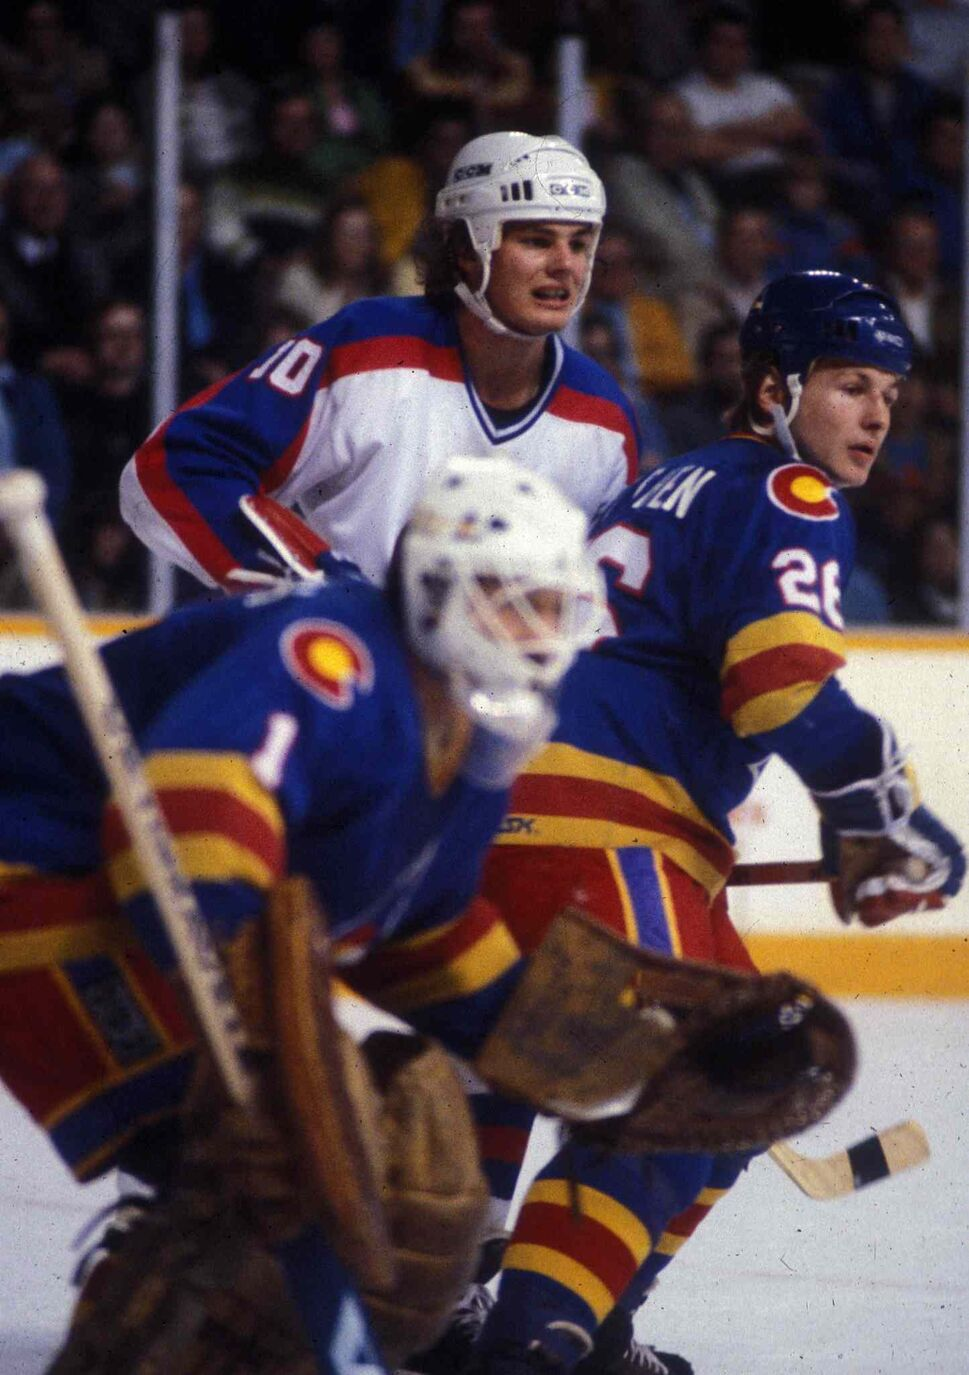 Hawerchuk playing against the Colorado Rockies in his first NHL season in 1981. (Ken Giglioitti / Winnipeg Free Press files)